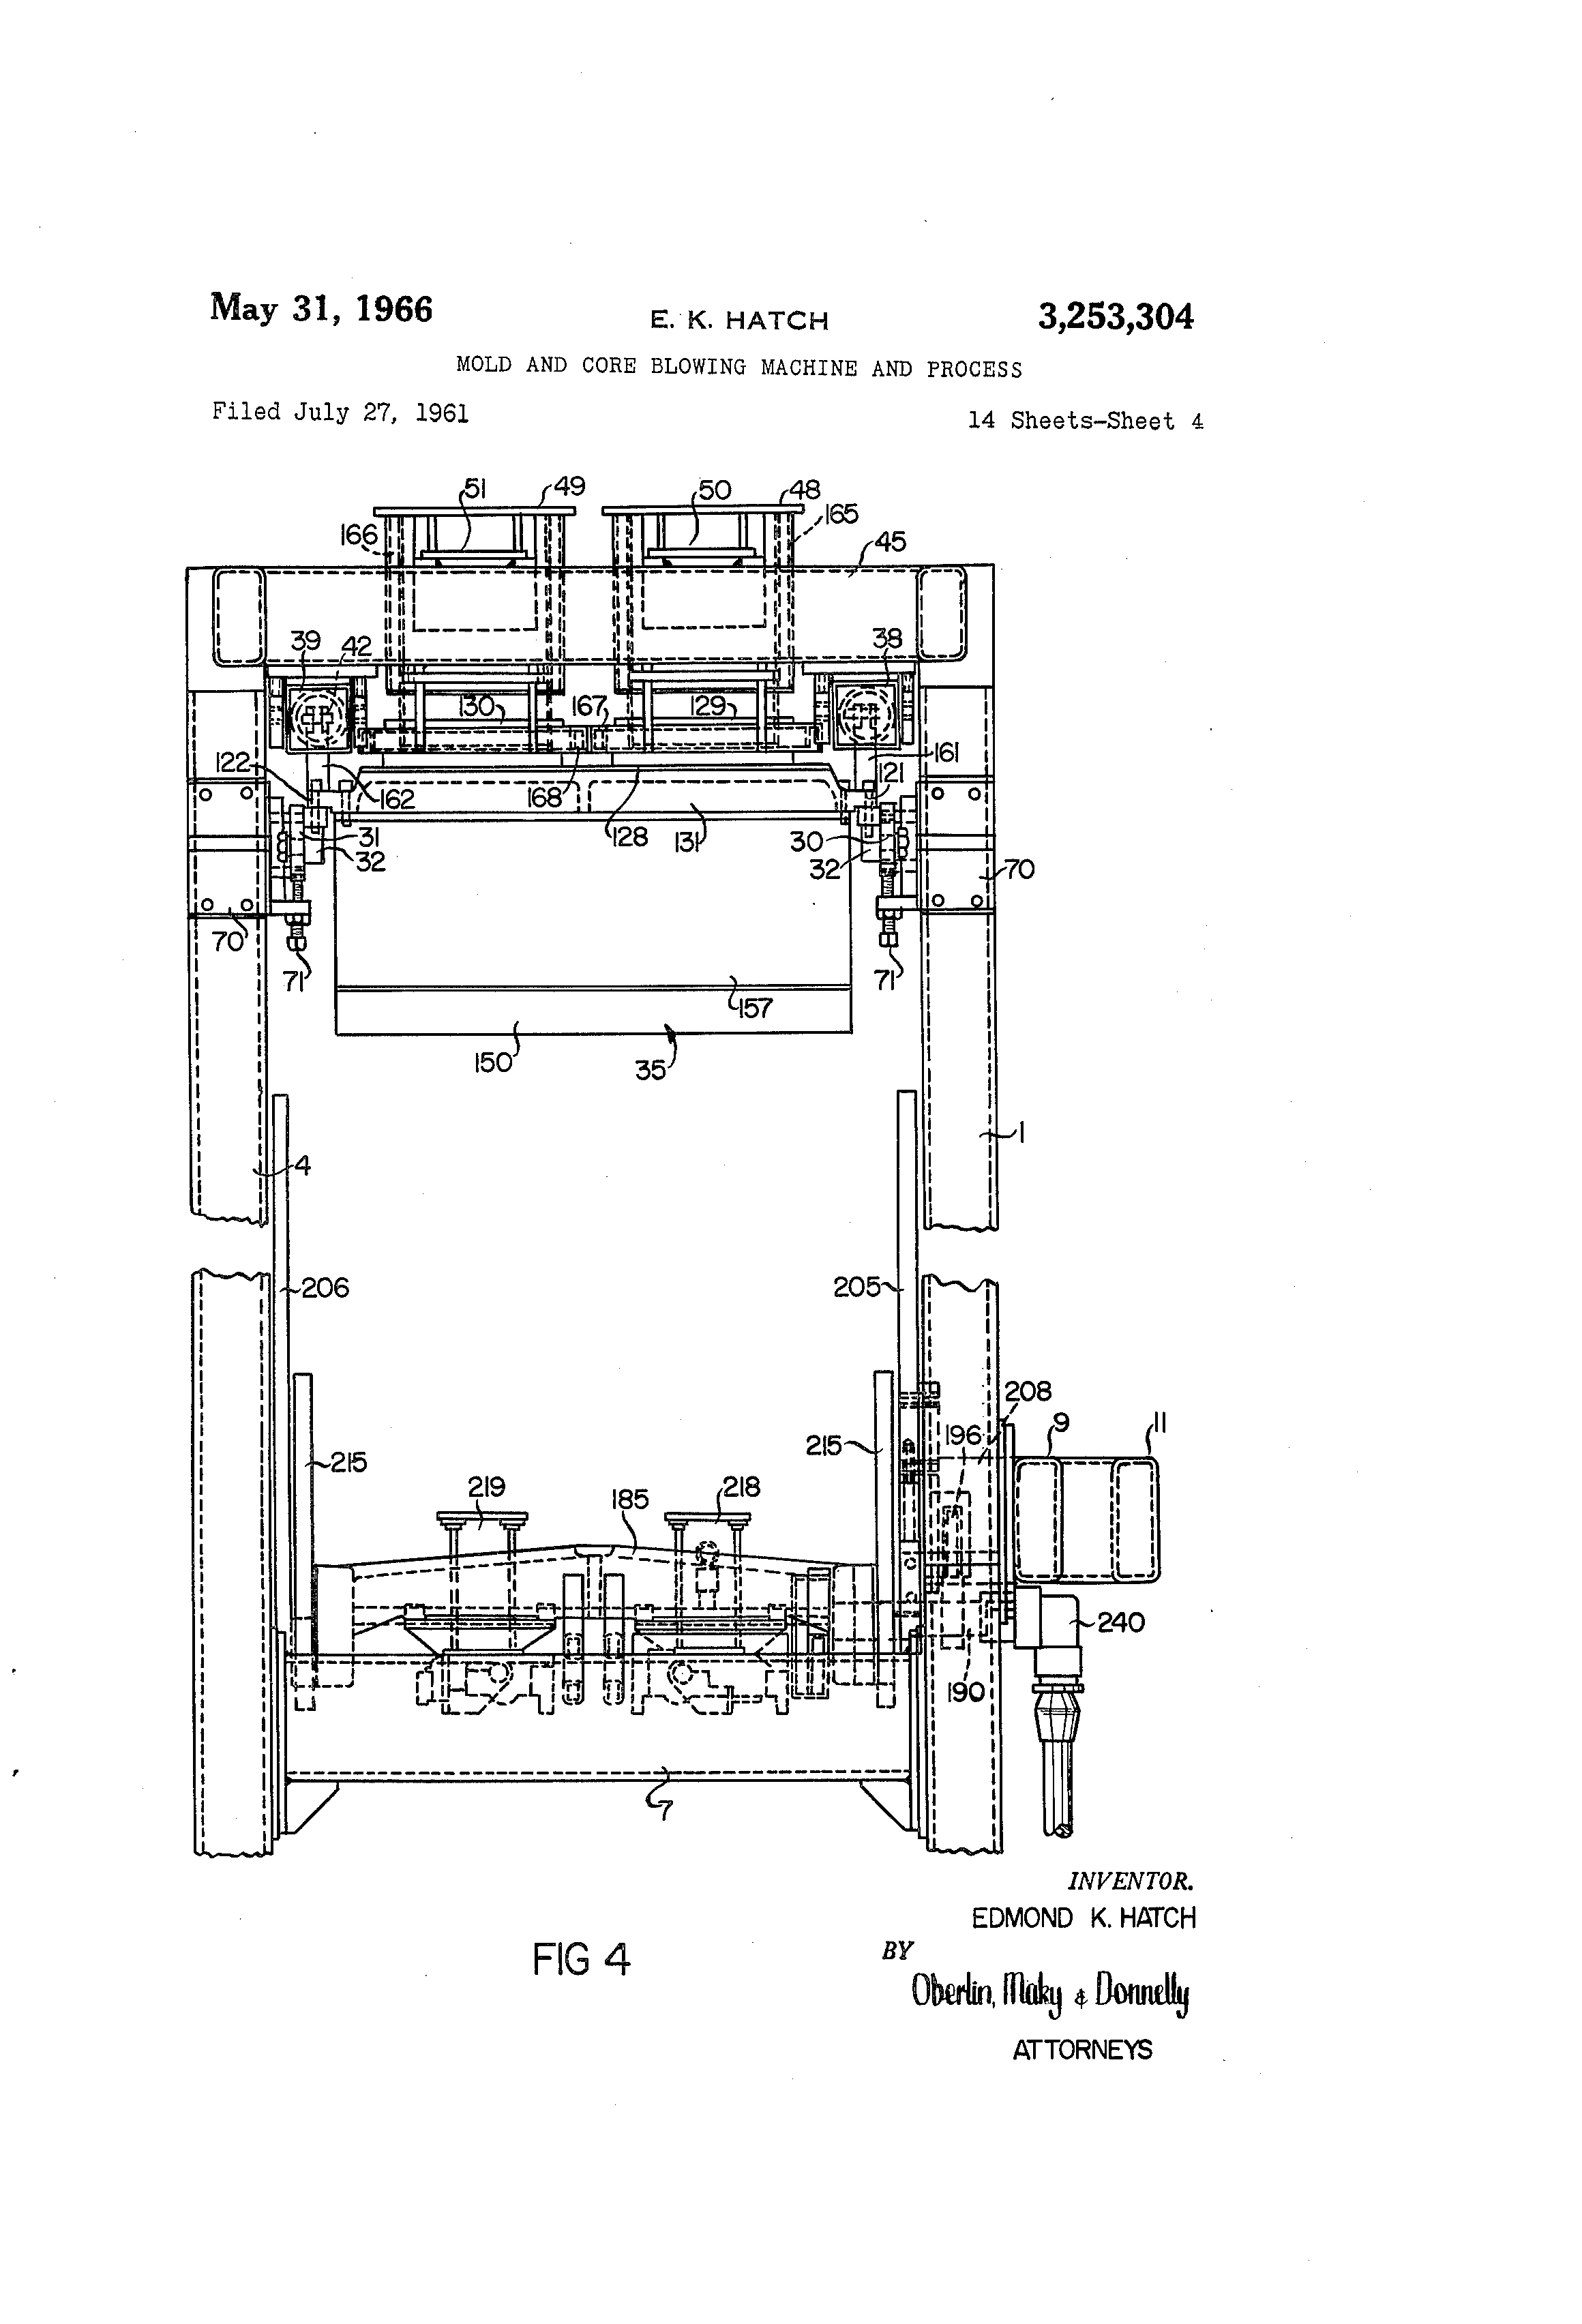 US3253304 3 patent us3253304 mold and core blowing machine and process  at bayanpartner.co